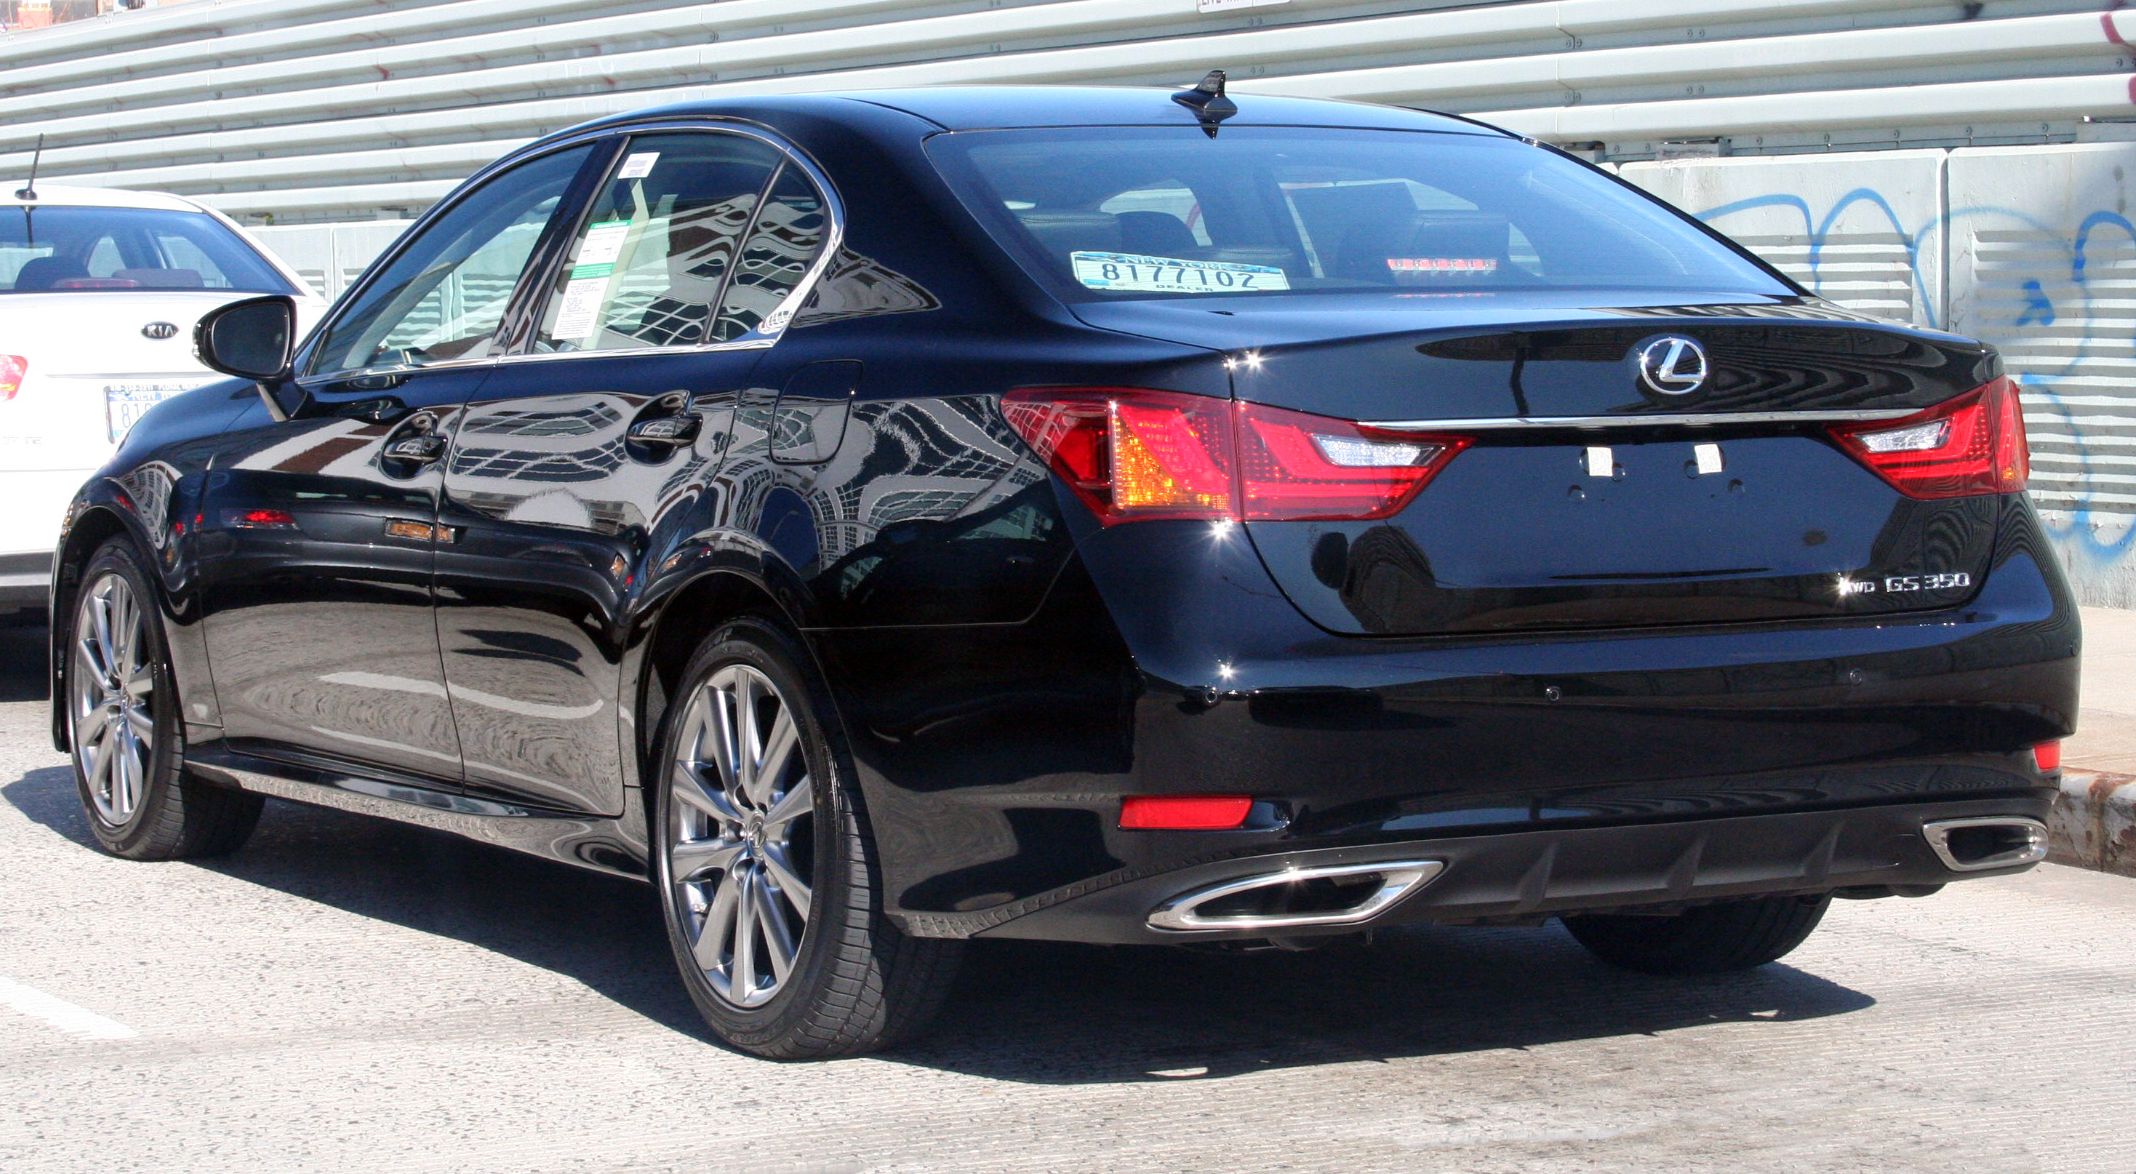 File:2012 Lexus GS350 AWD.jpg - Wikimedia Commons